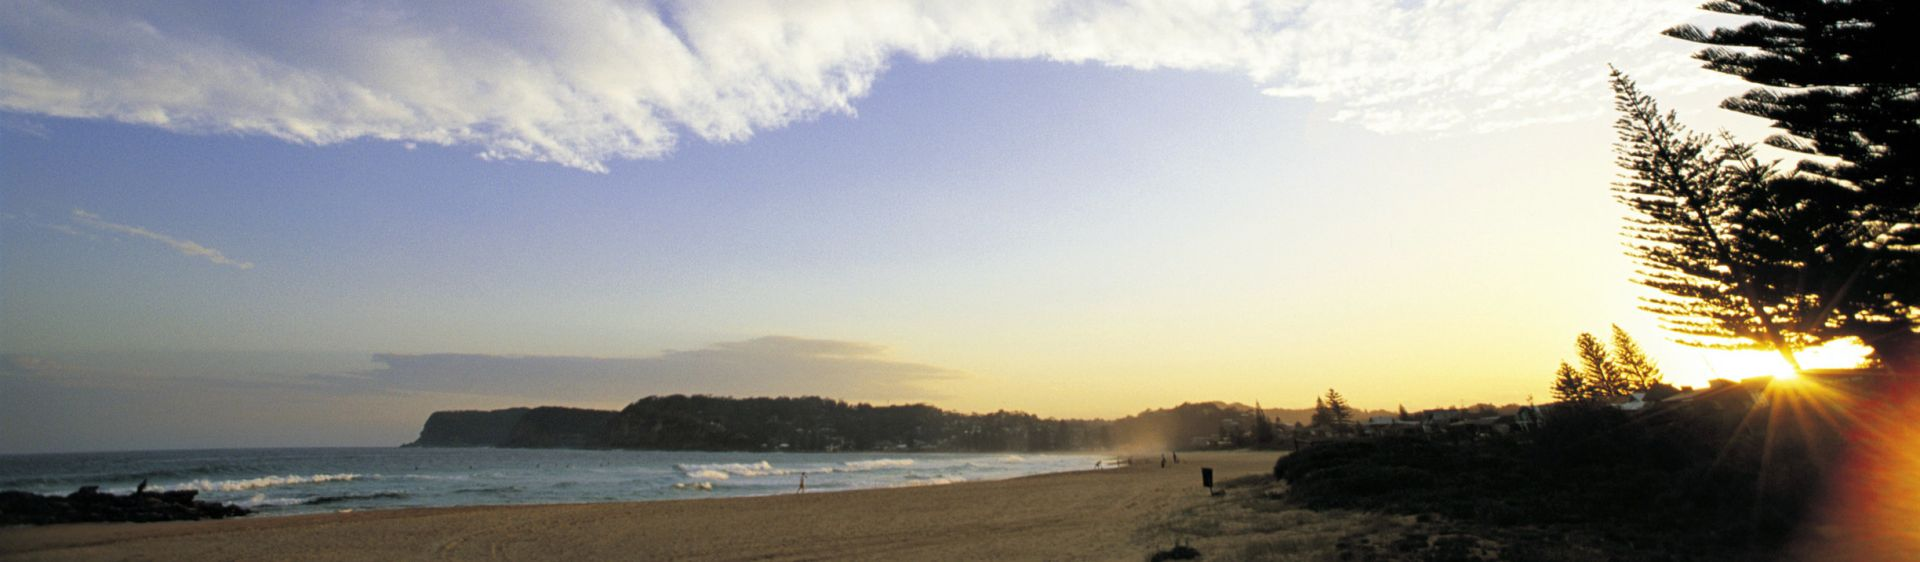 Beach at Terrigal, Central Coast